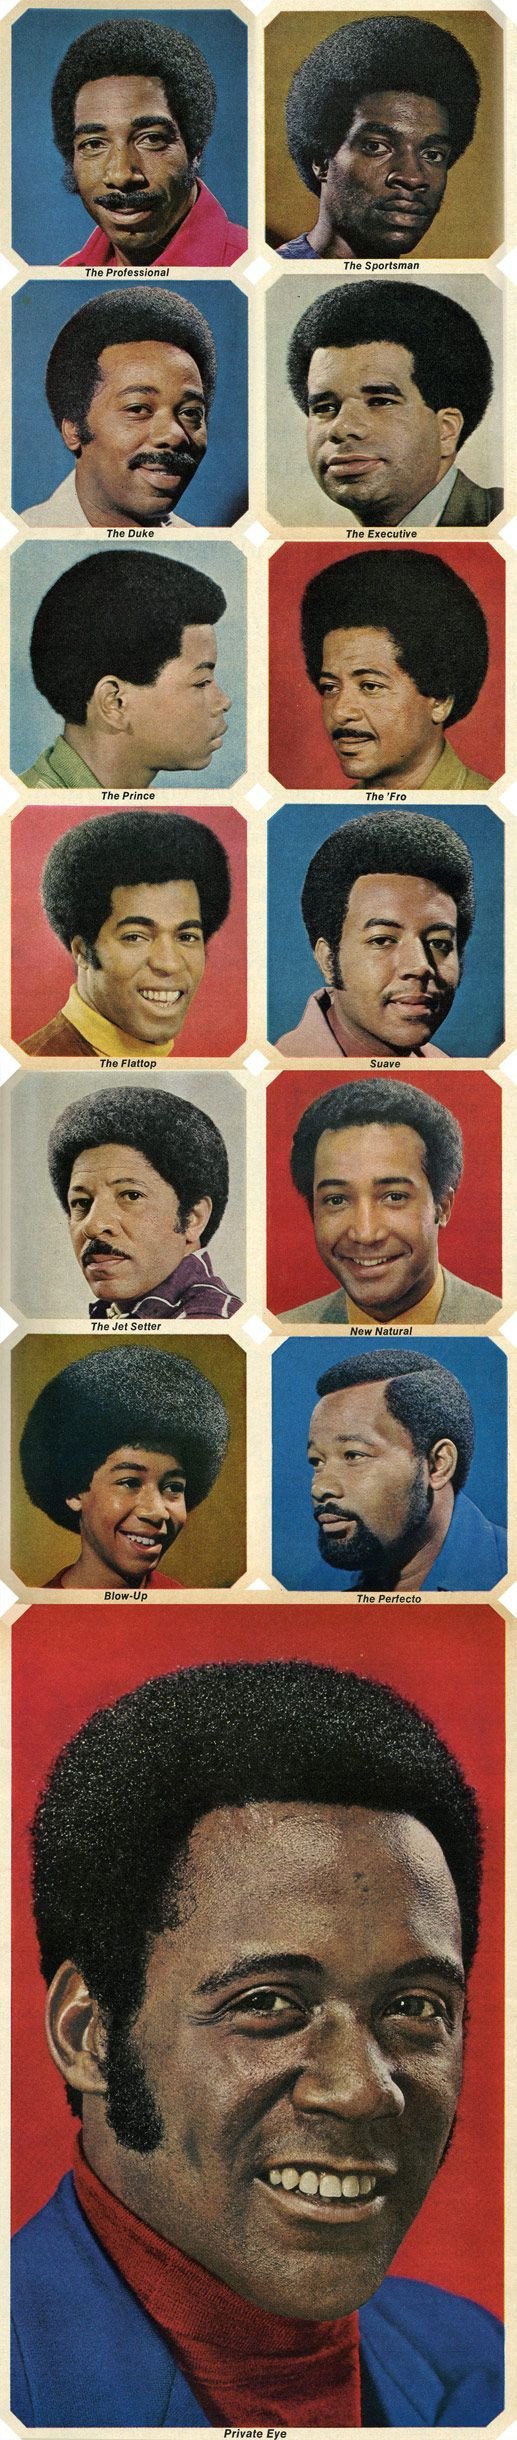 Haircut names for black men fro styles featuring richard roundtree who modeled before he became